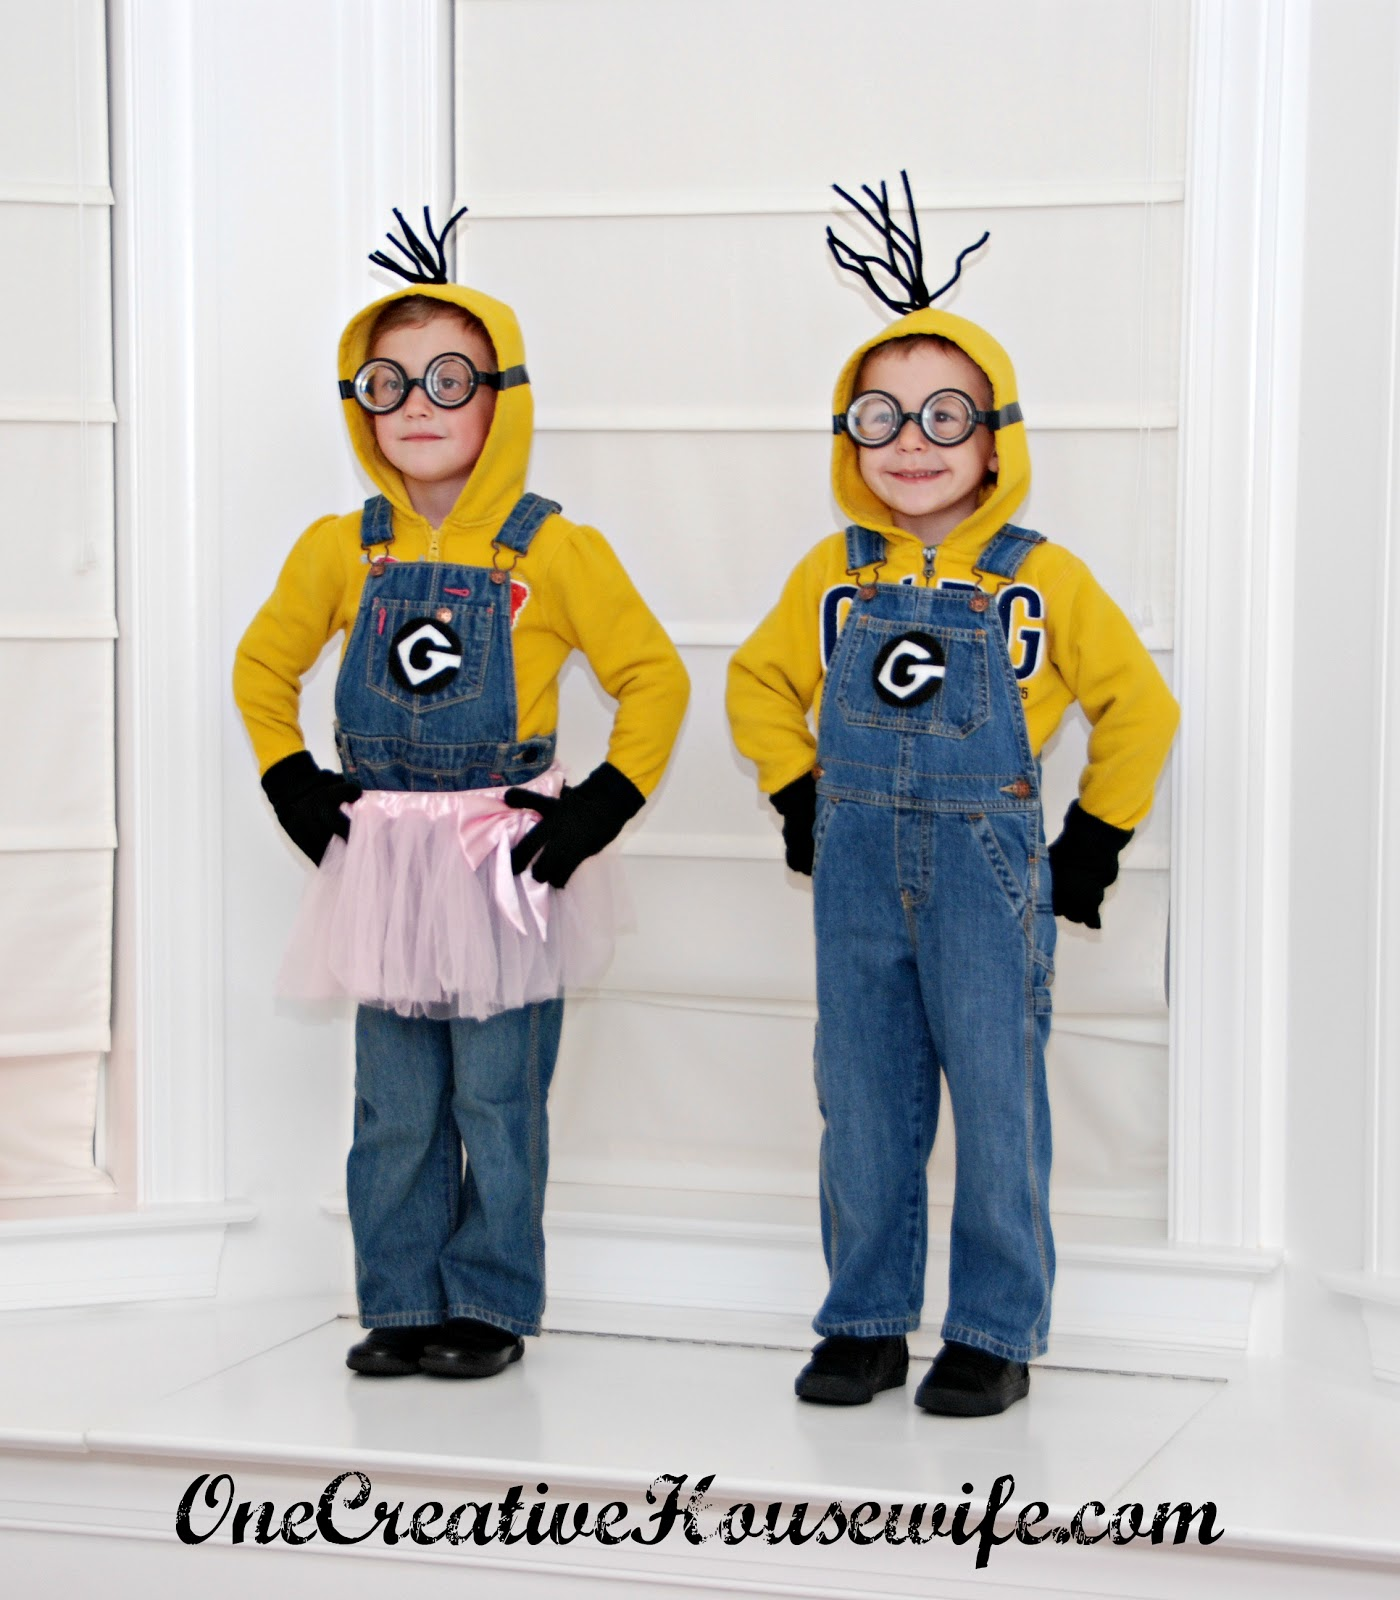 Minion Costume http://www.onecreativehousewife.com/2012/10/despicable-me-minion-costumes-tutorial.html